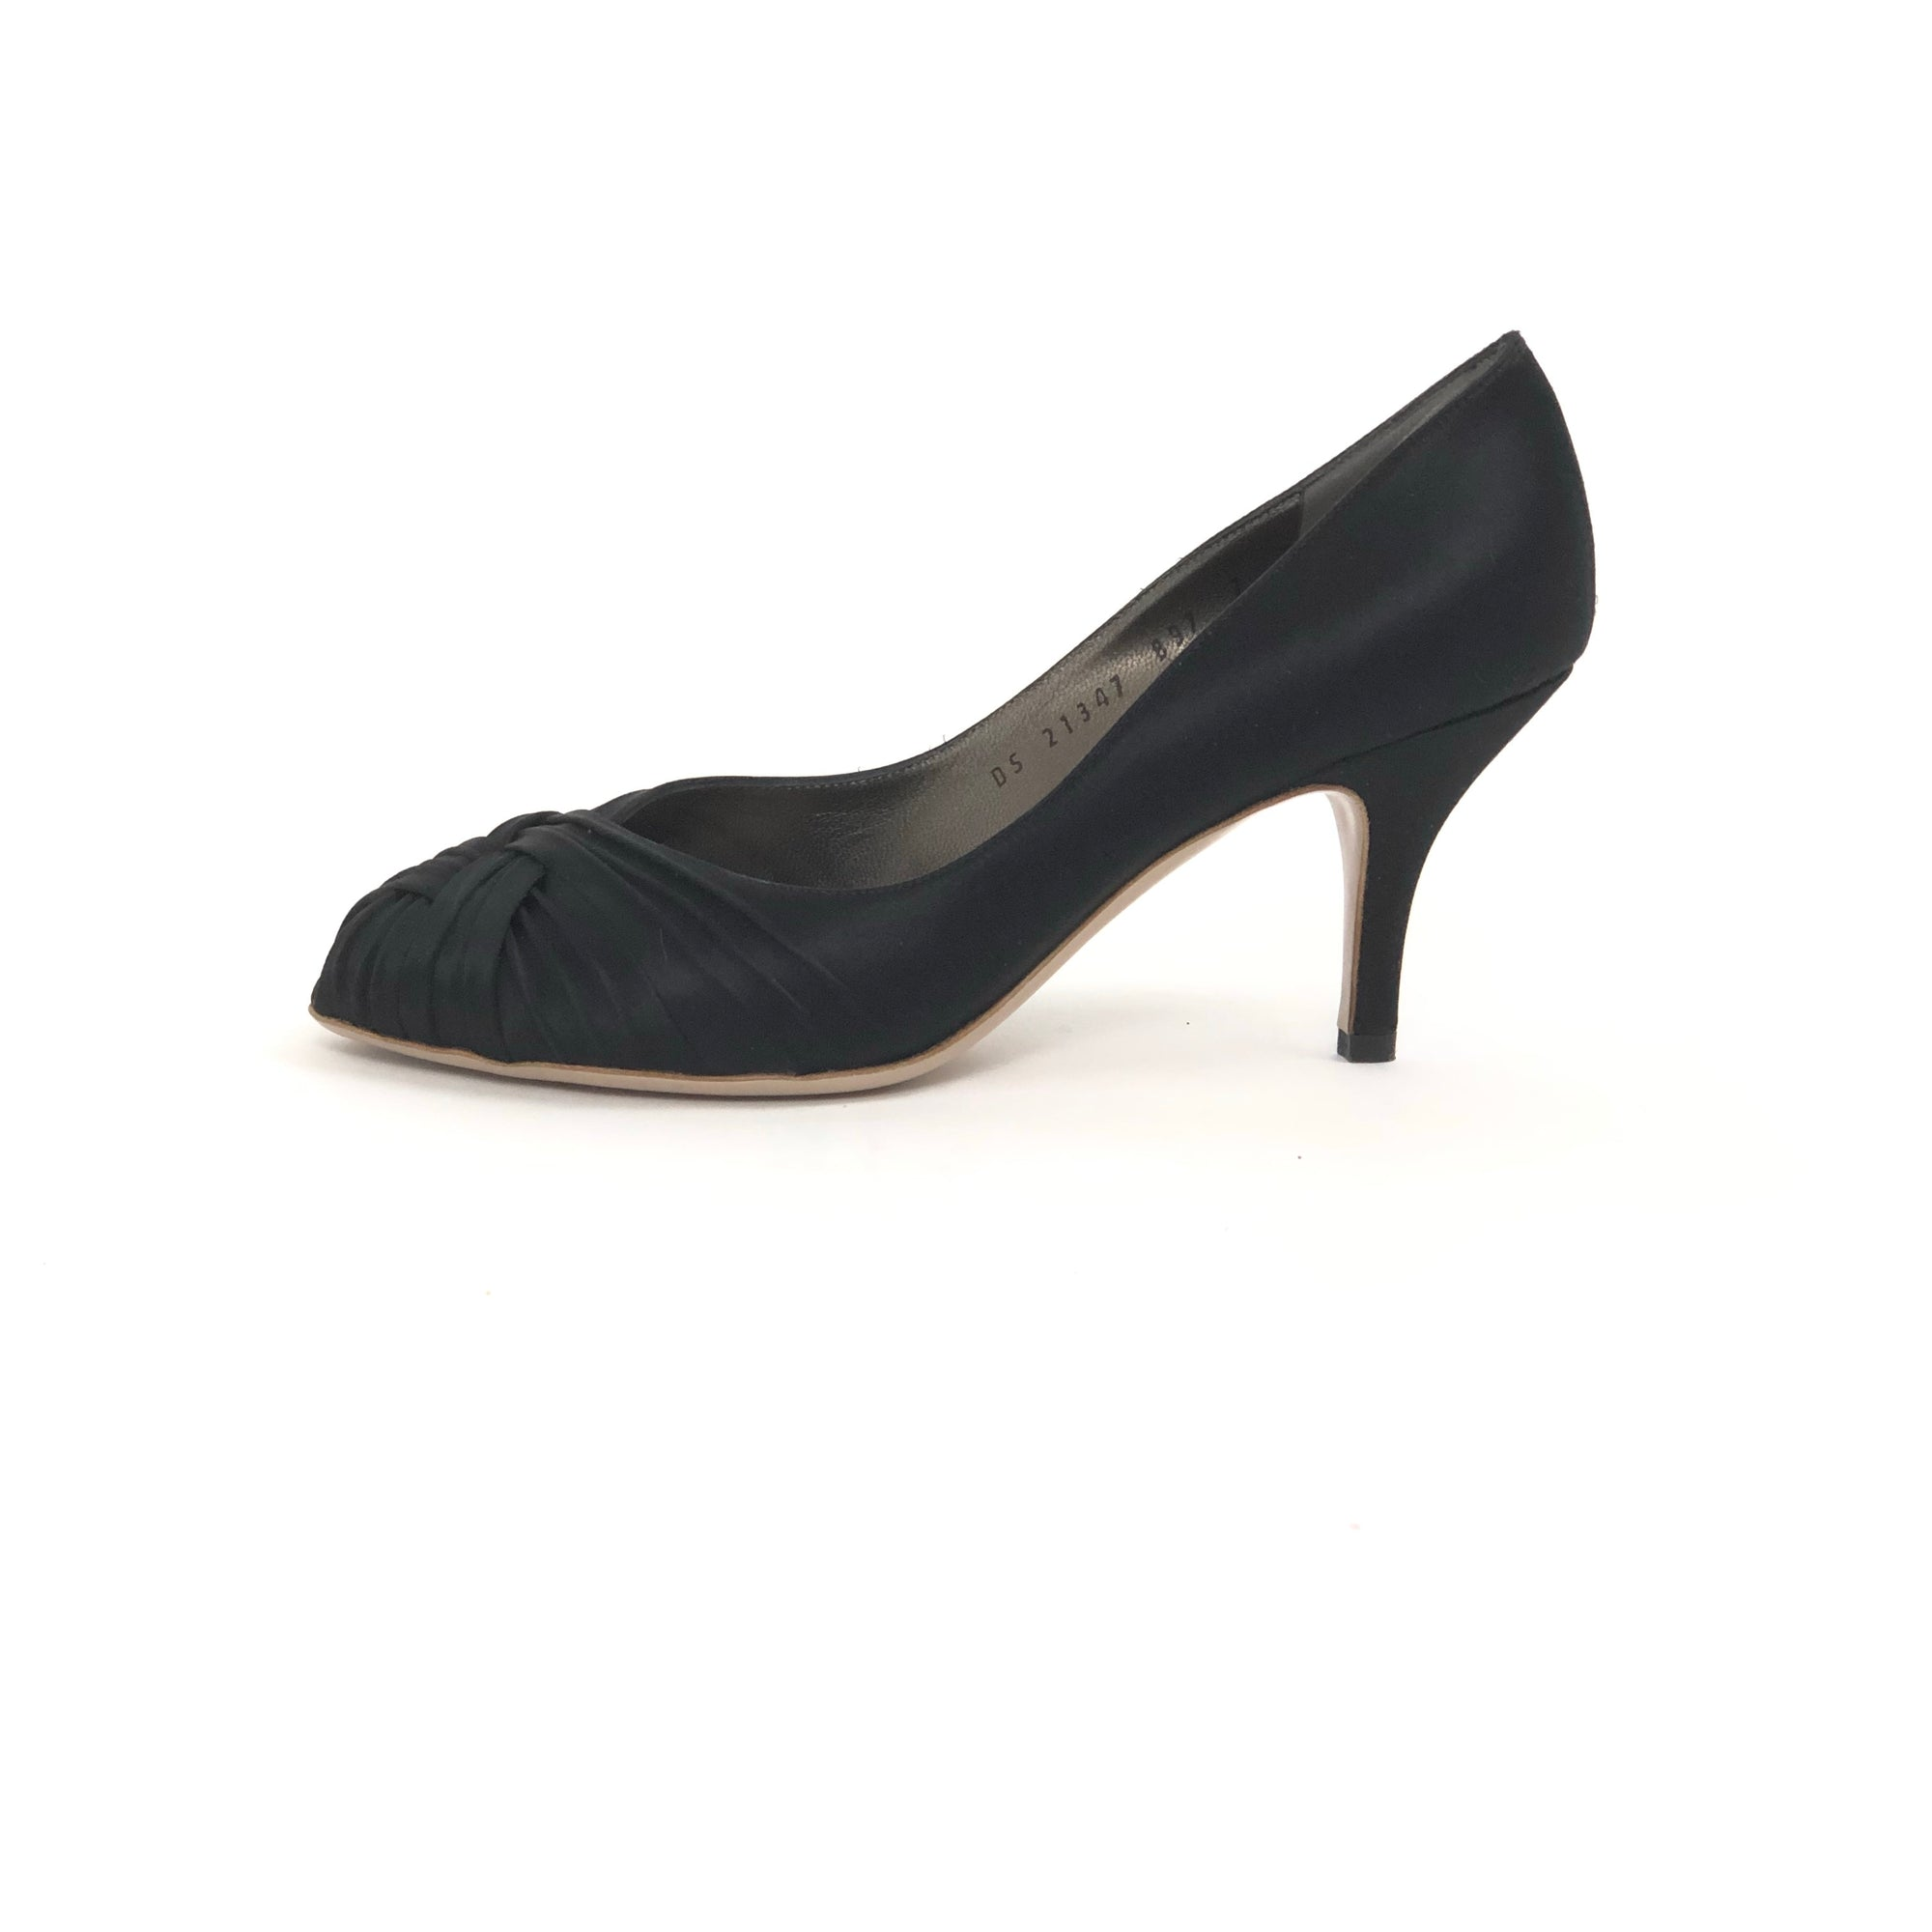 ladiesoflux - Salvatore Ferragamo Gaila 7cm Peep Toe Pump Black, Size 7 - Ladies Of Lux - Shoes